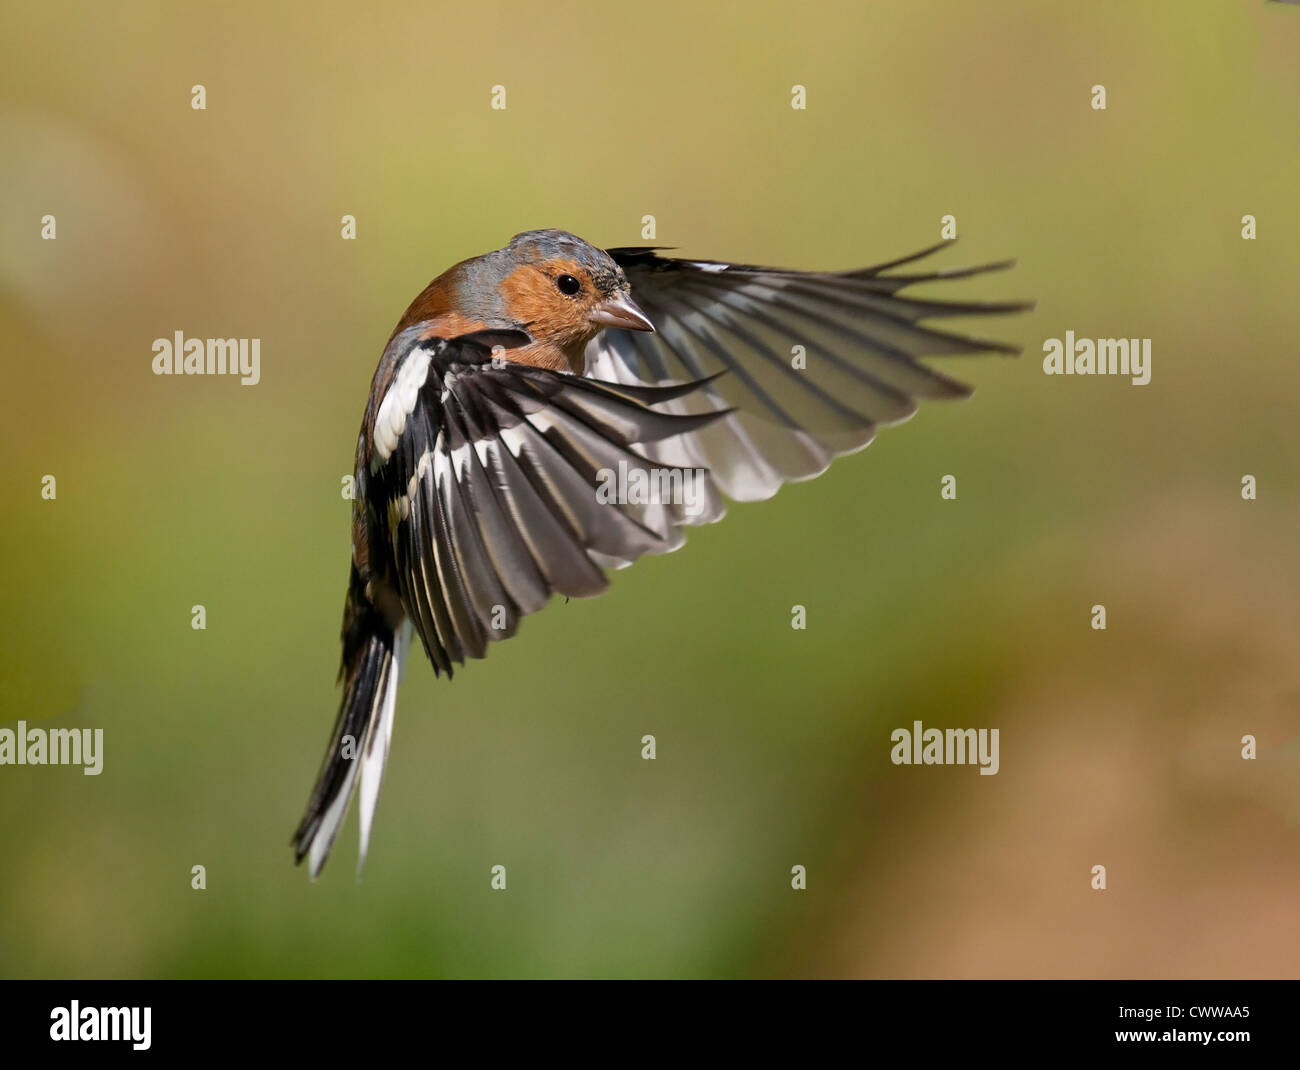 A male chaffinch captured in flight - Stock Image